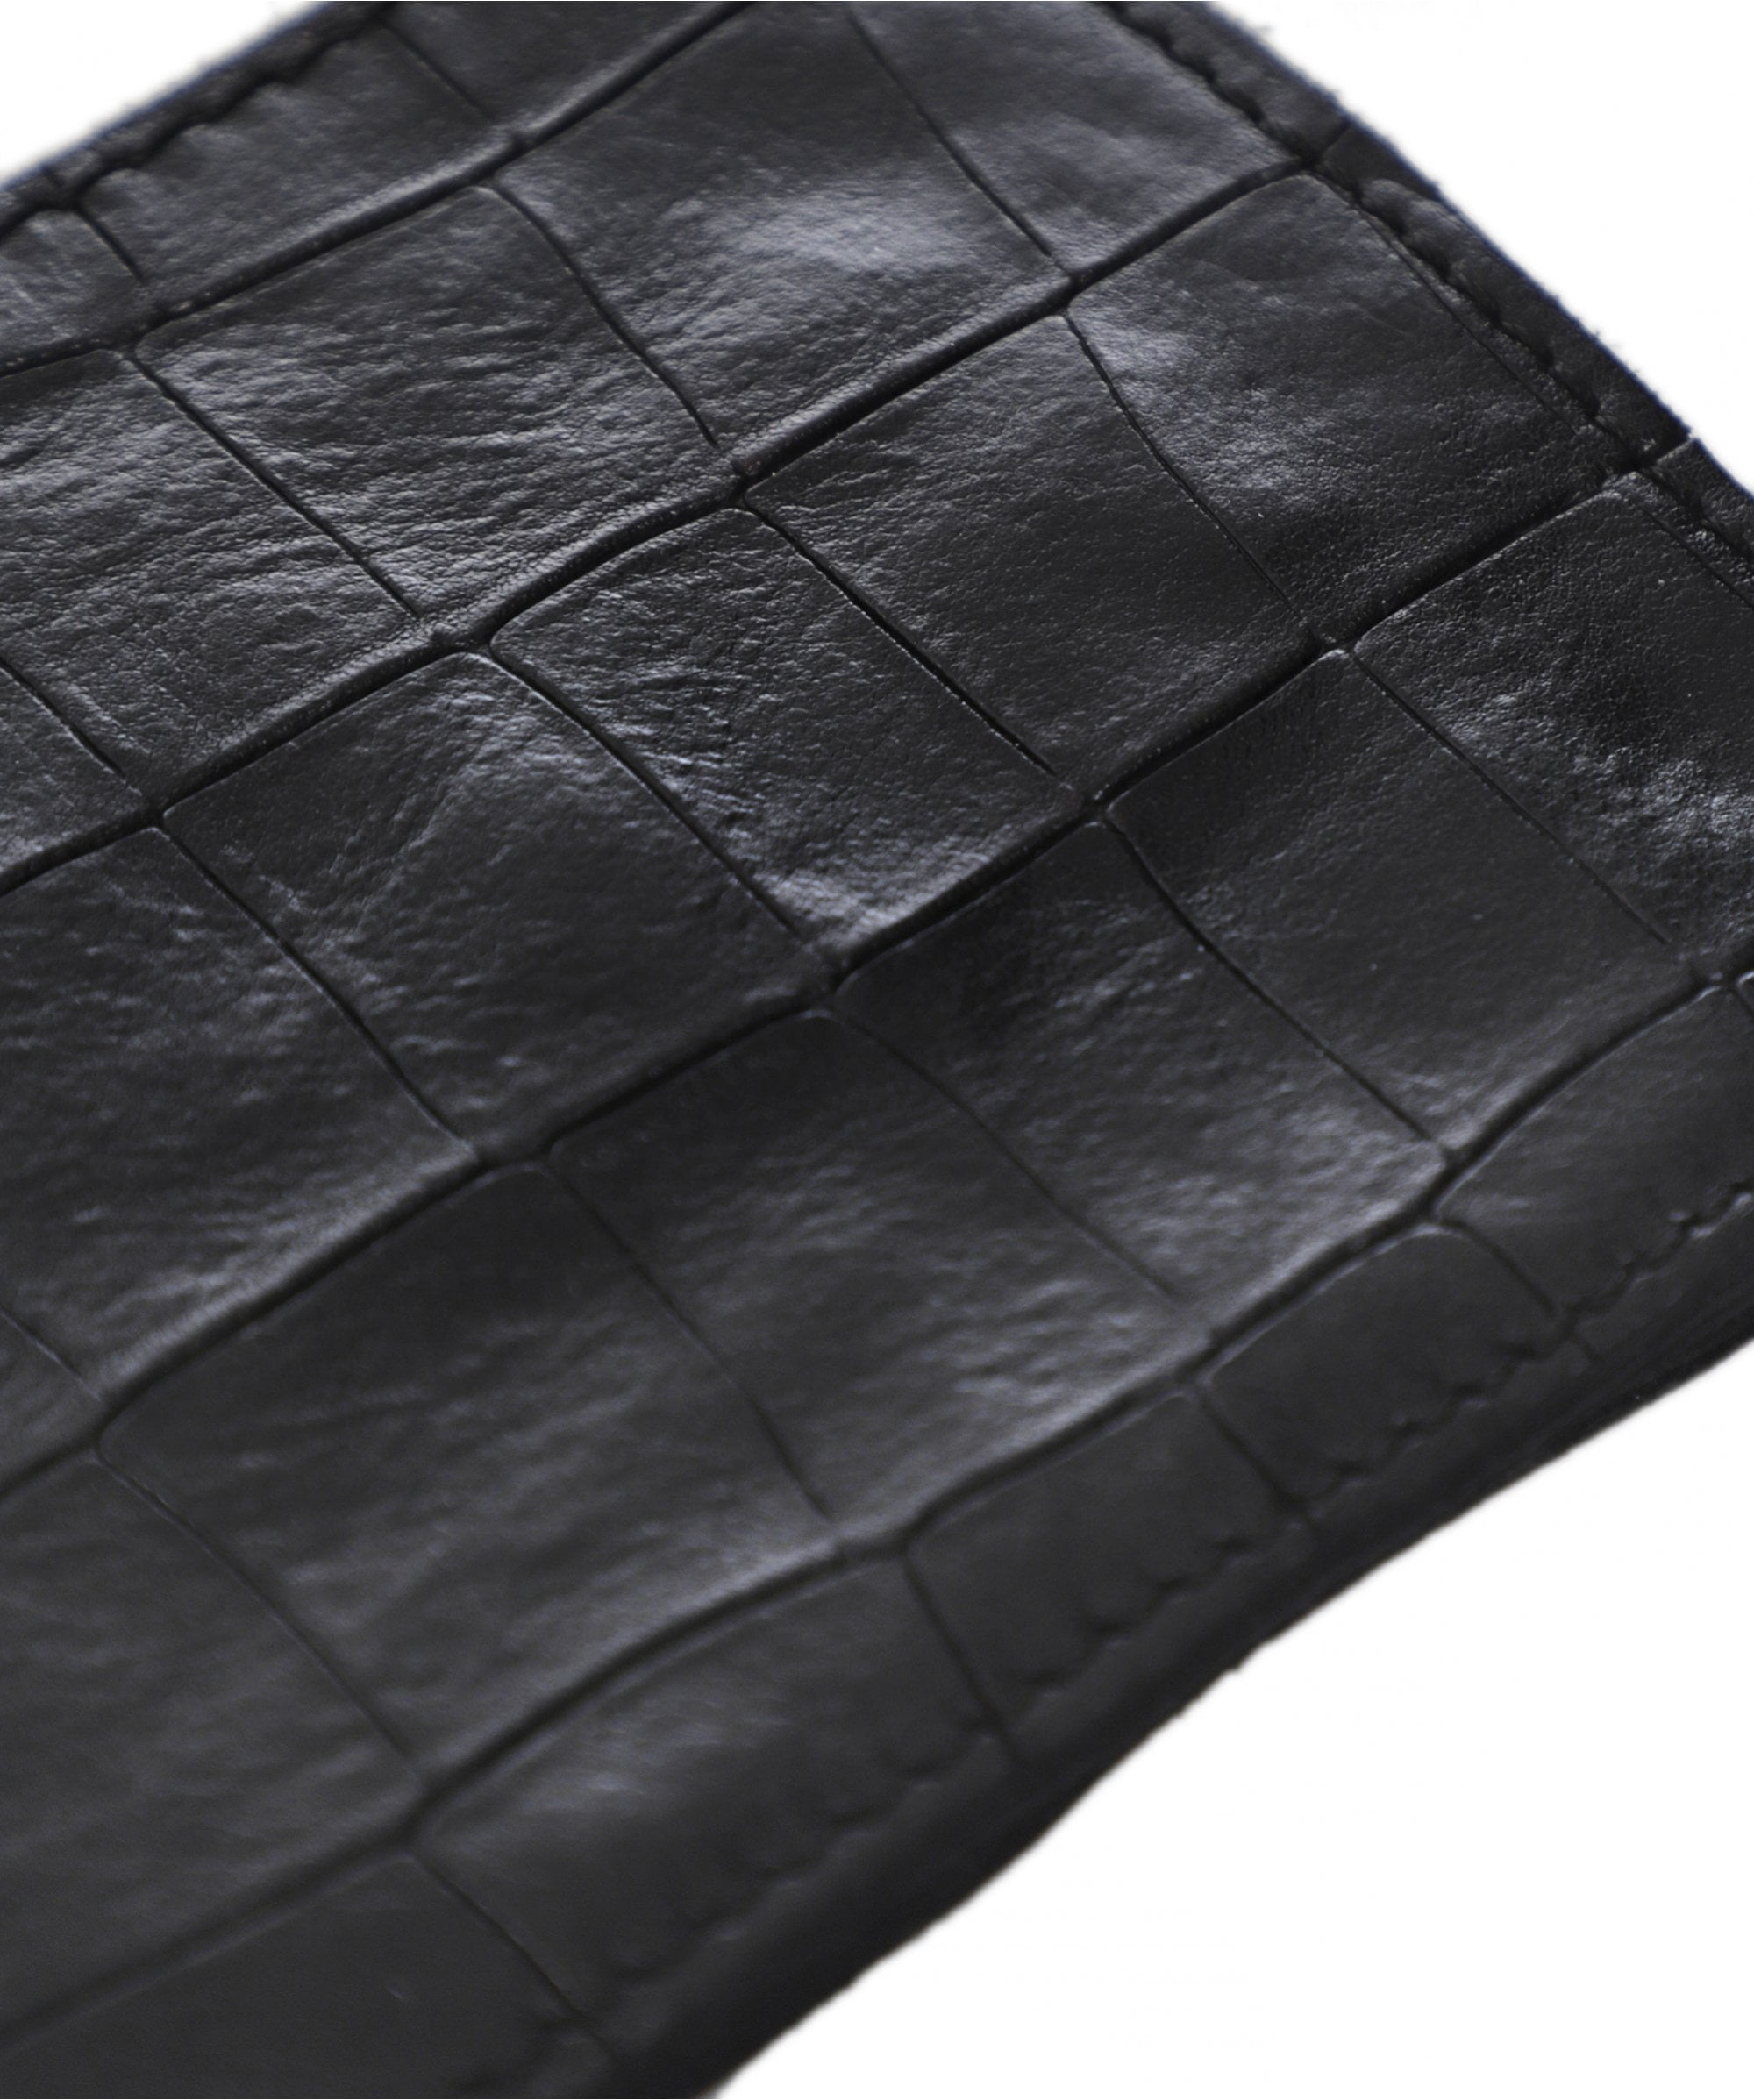 Leather coinwallet